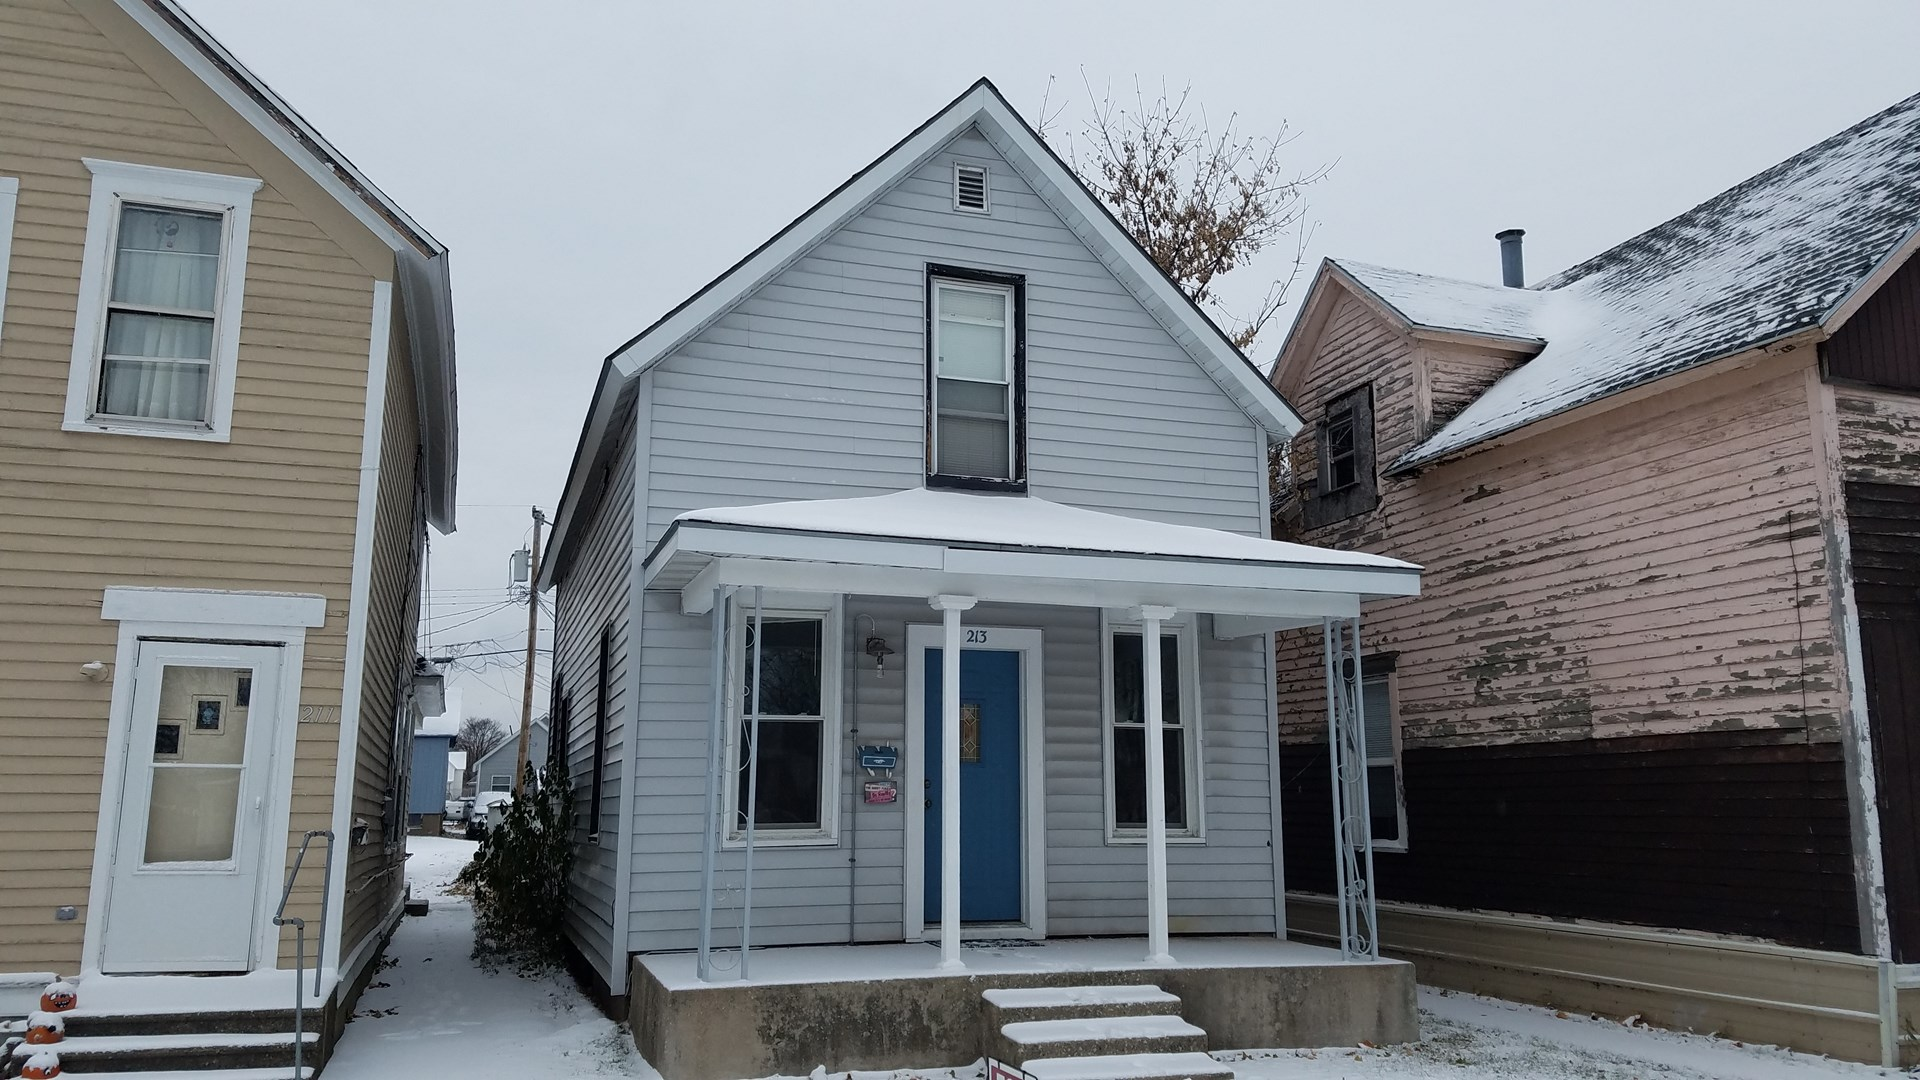 Charming two bedroom, 1 bath home - 213 N. 14th - Escanaba